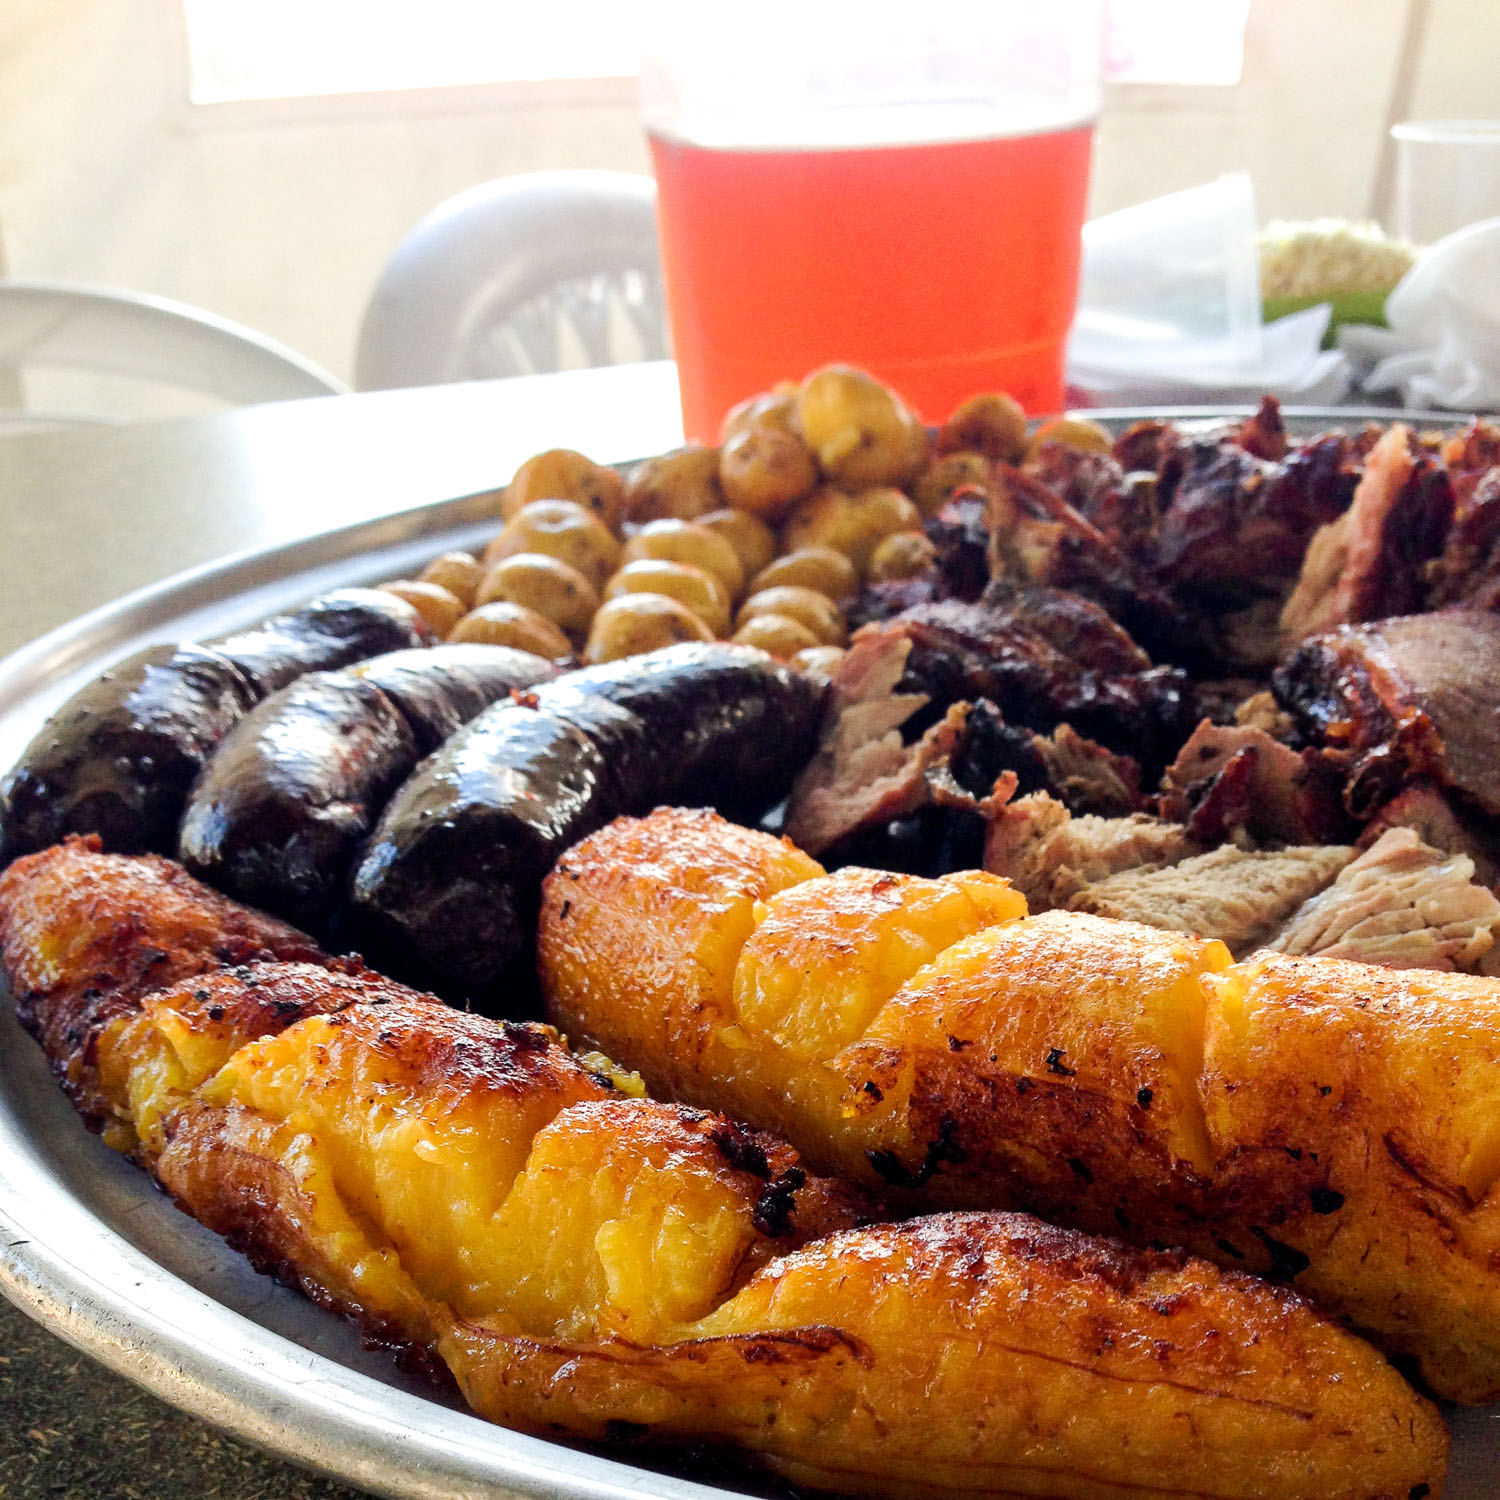 Potatoes, blood sausage, plantain, and barbecue in Colombia (Eat Me. Drink Me.)